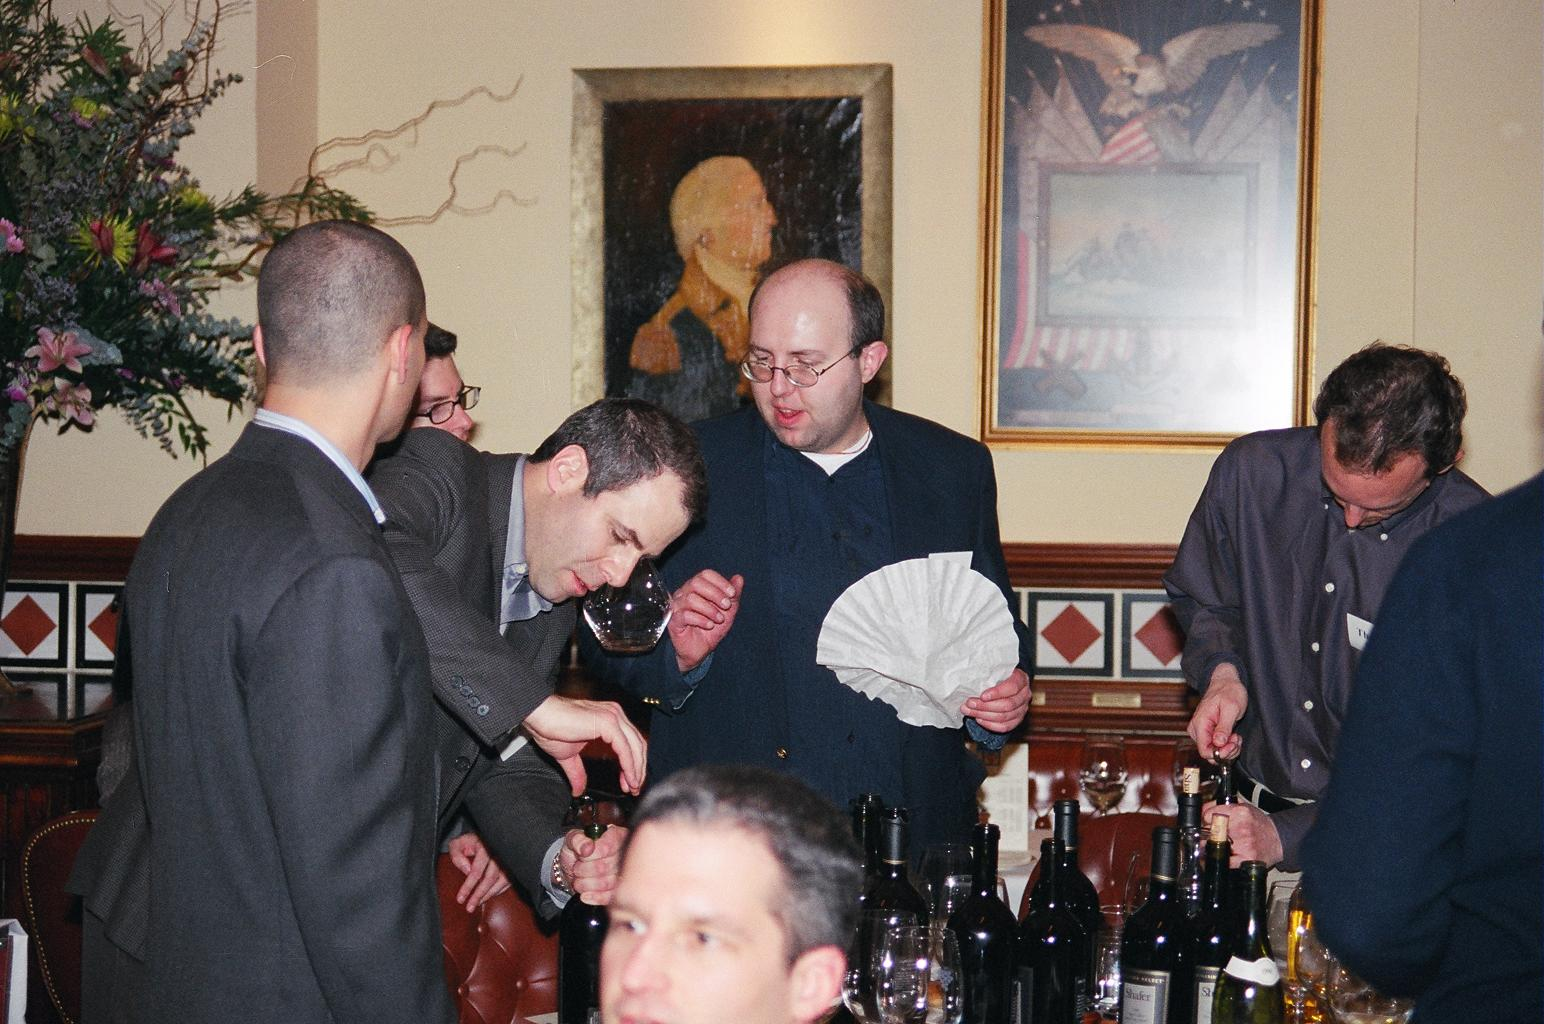 shafer hss post house nyc  mark hirshorn and tom concilio focus on opening bottles while brent clayton just tries to focus